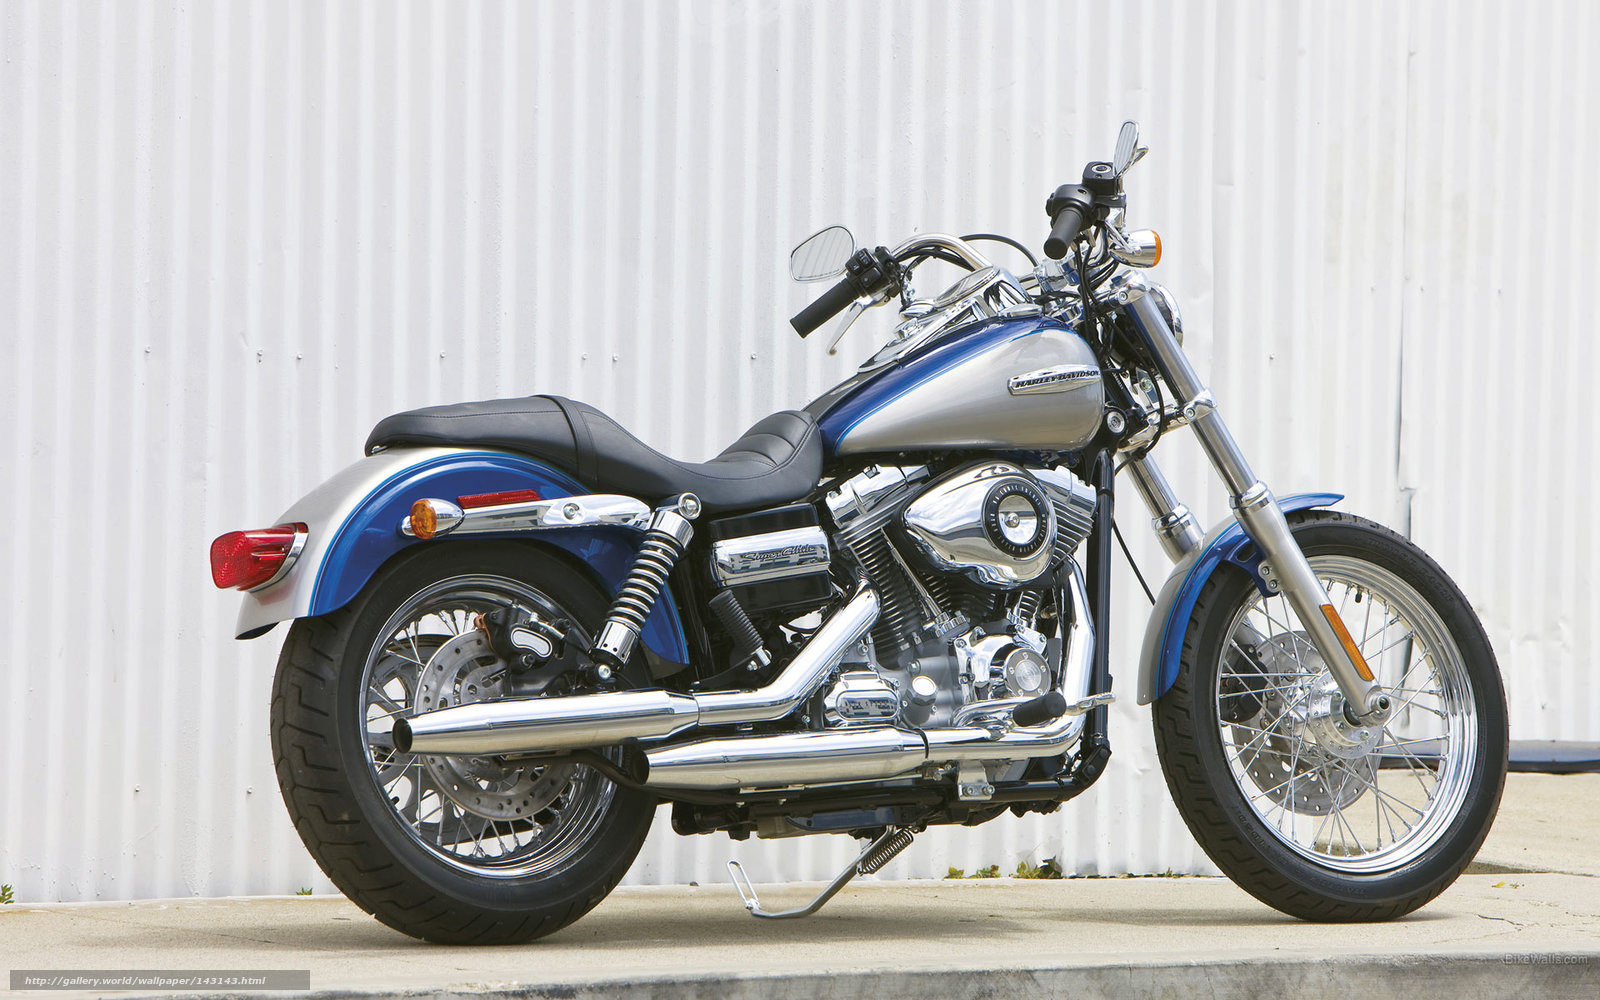 2009 Harley Davidson Fxdc Dyna Super Glide Custom: Download Wallpaper Harley-Davidson, Dyna, FXDC Dyna Super